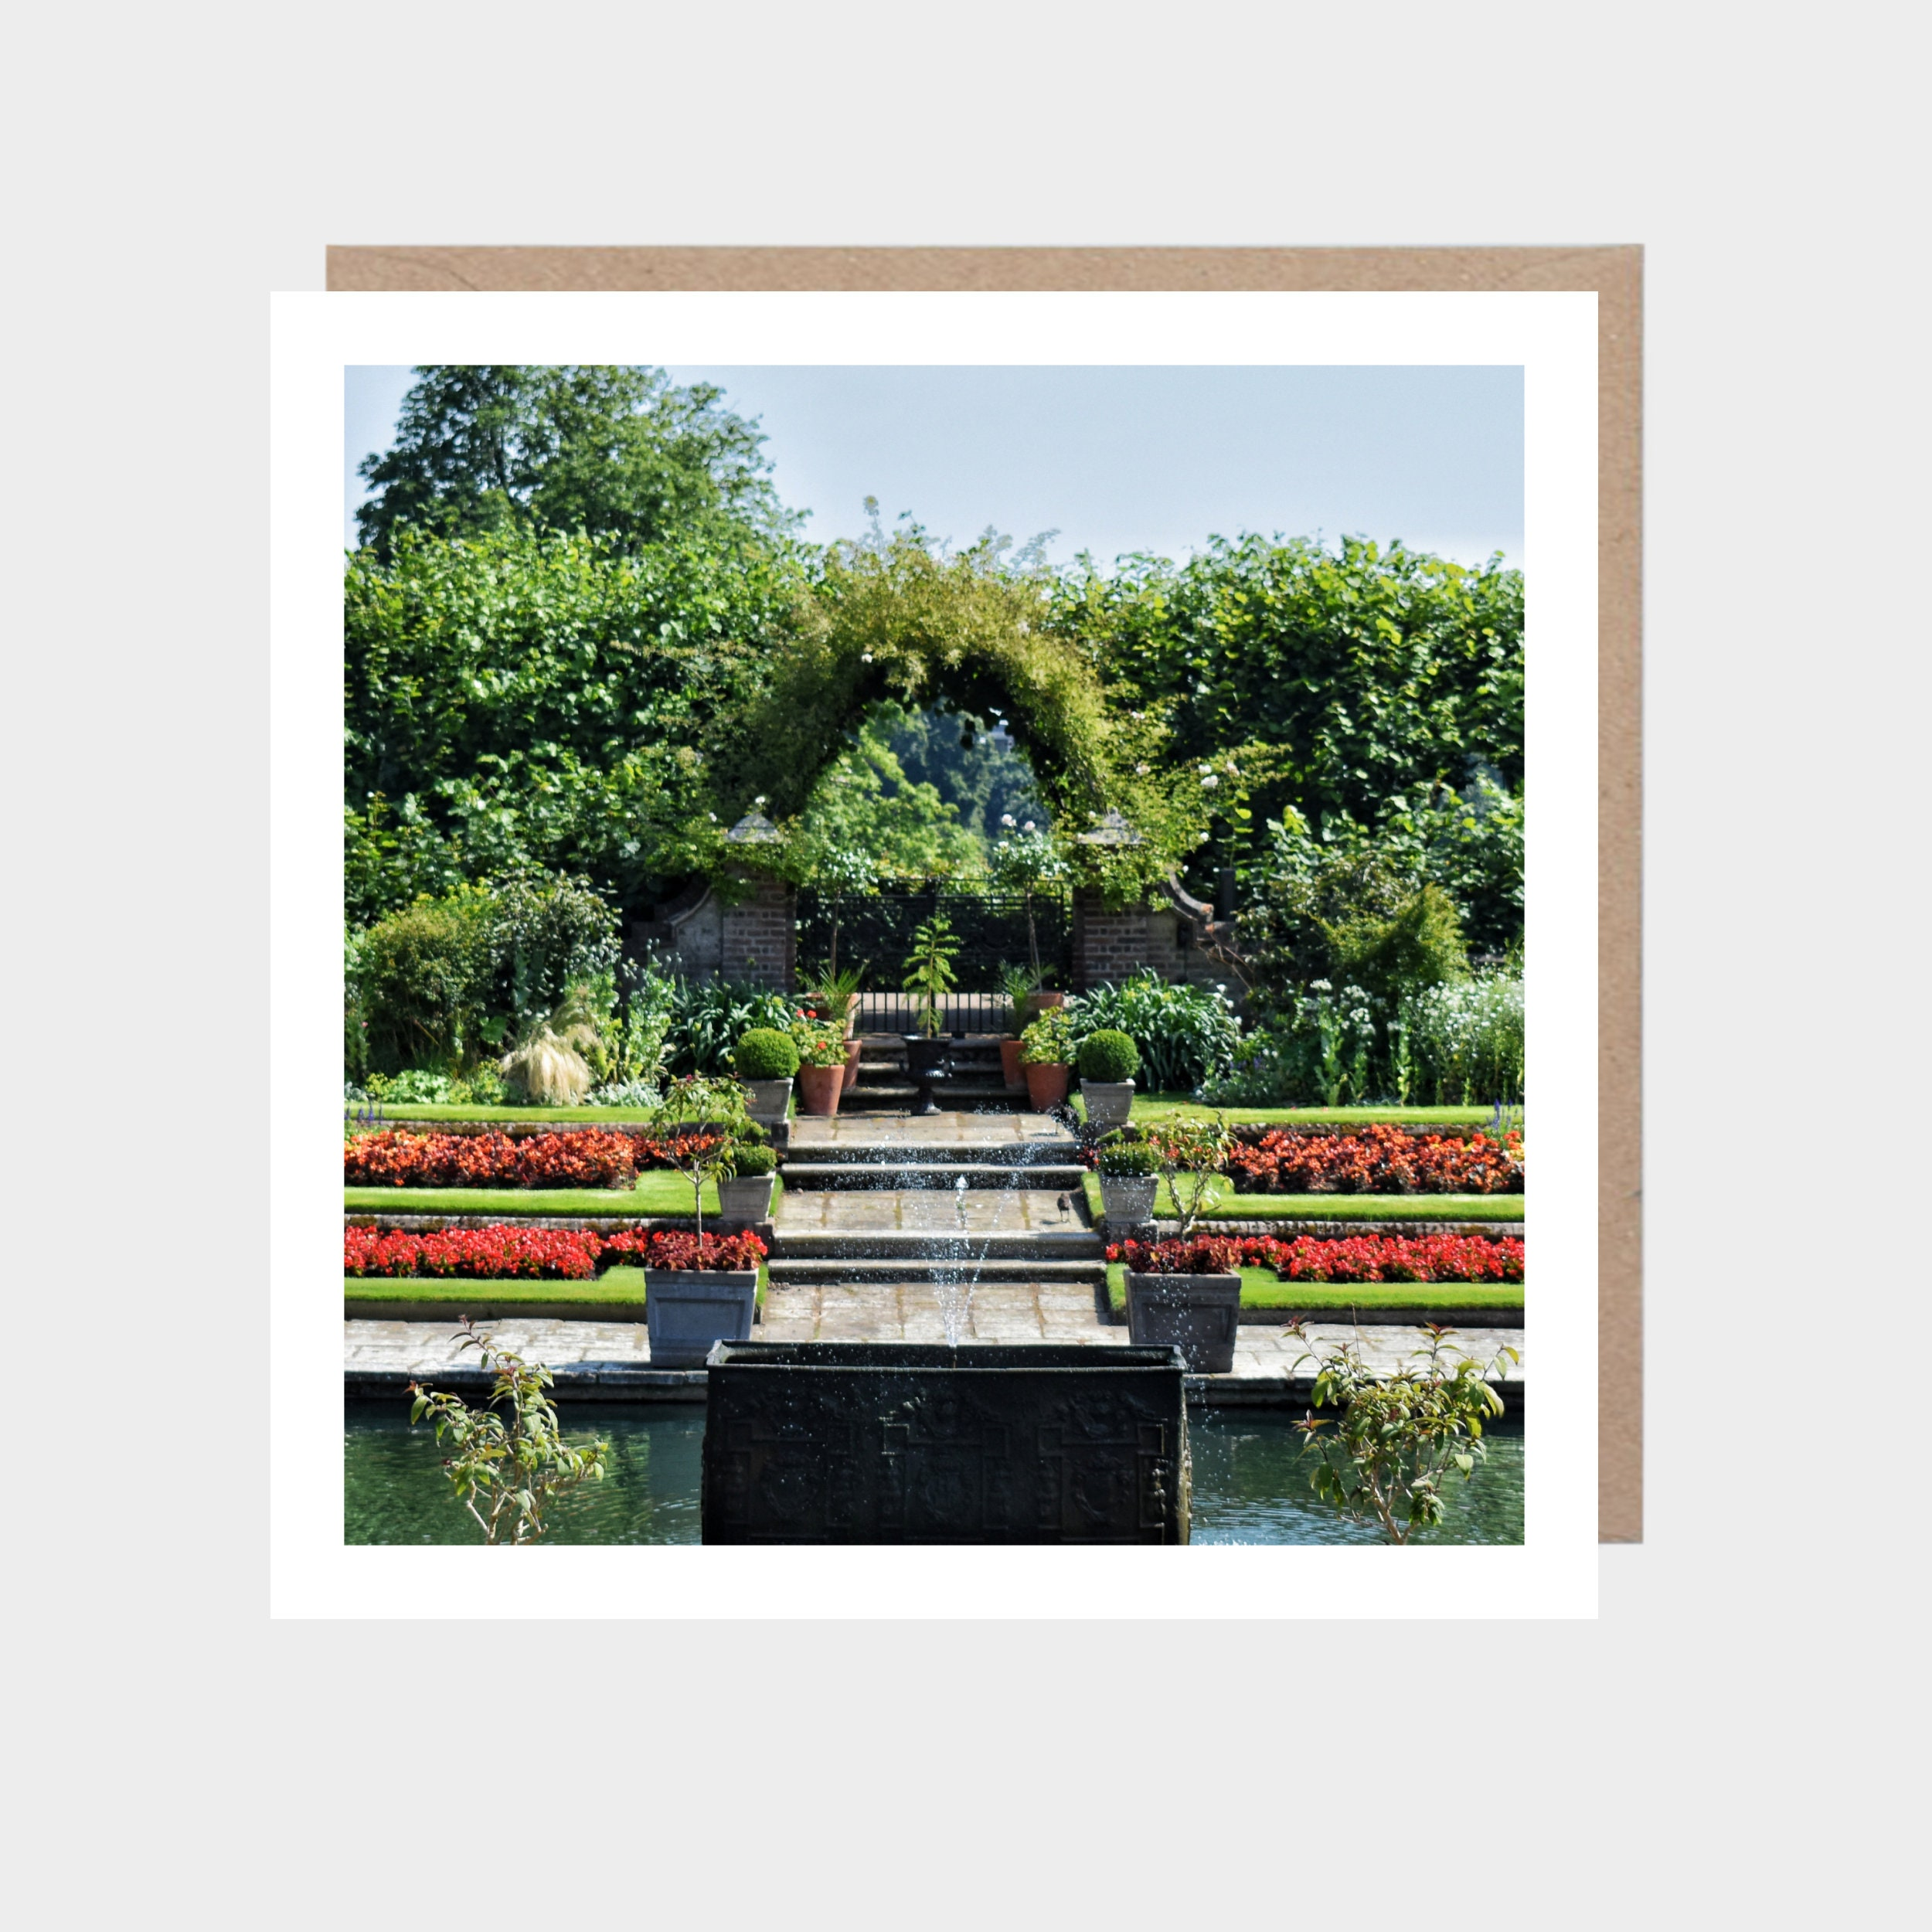 Square card with a photo of Kensington Gardens, with a brown kraft envelope